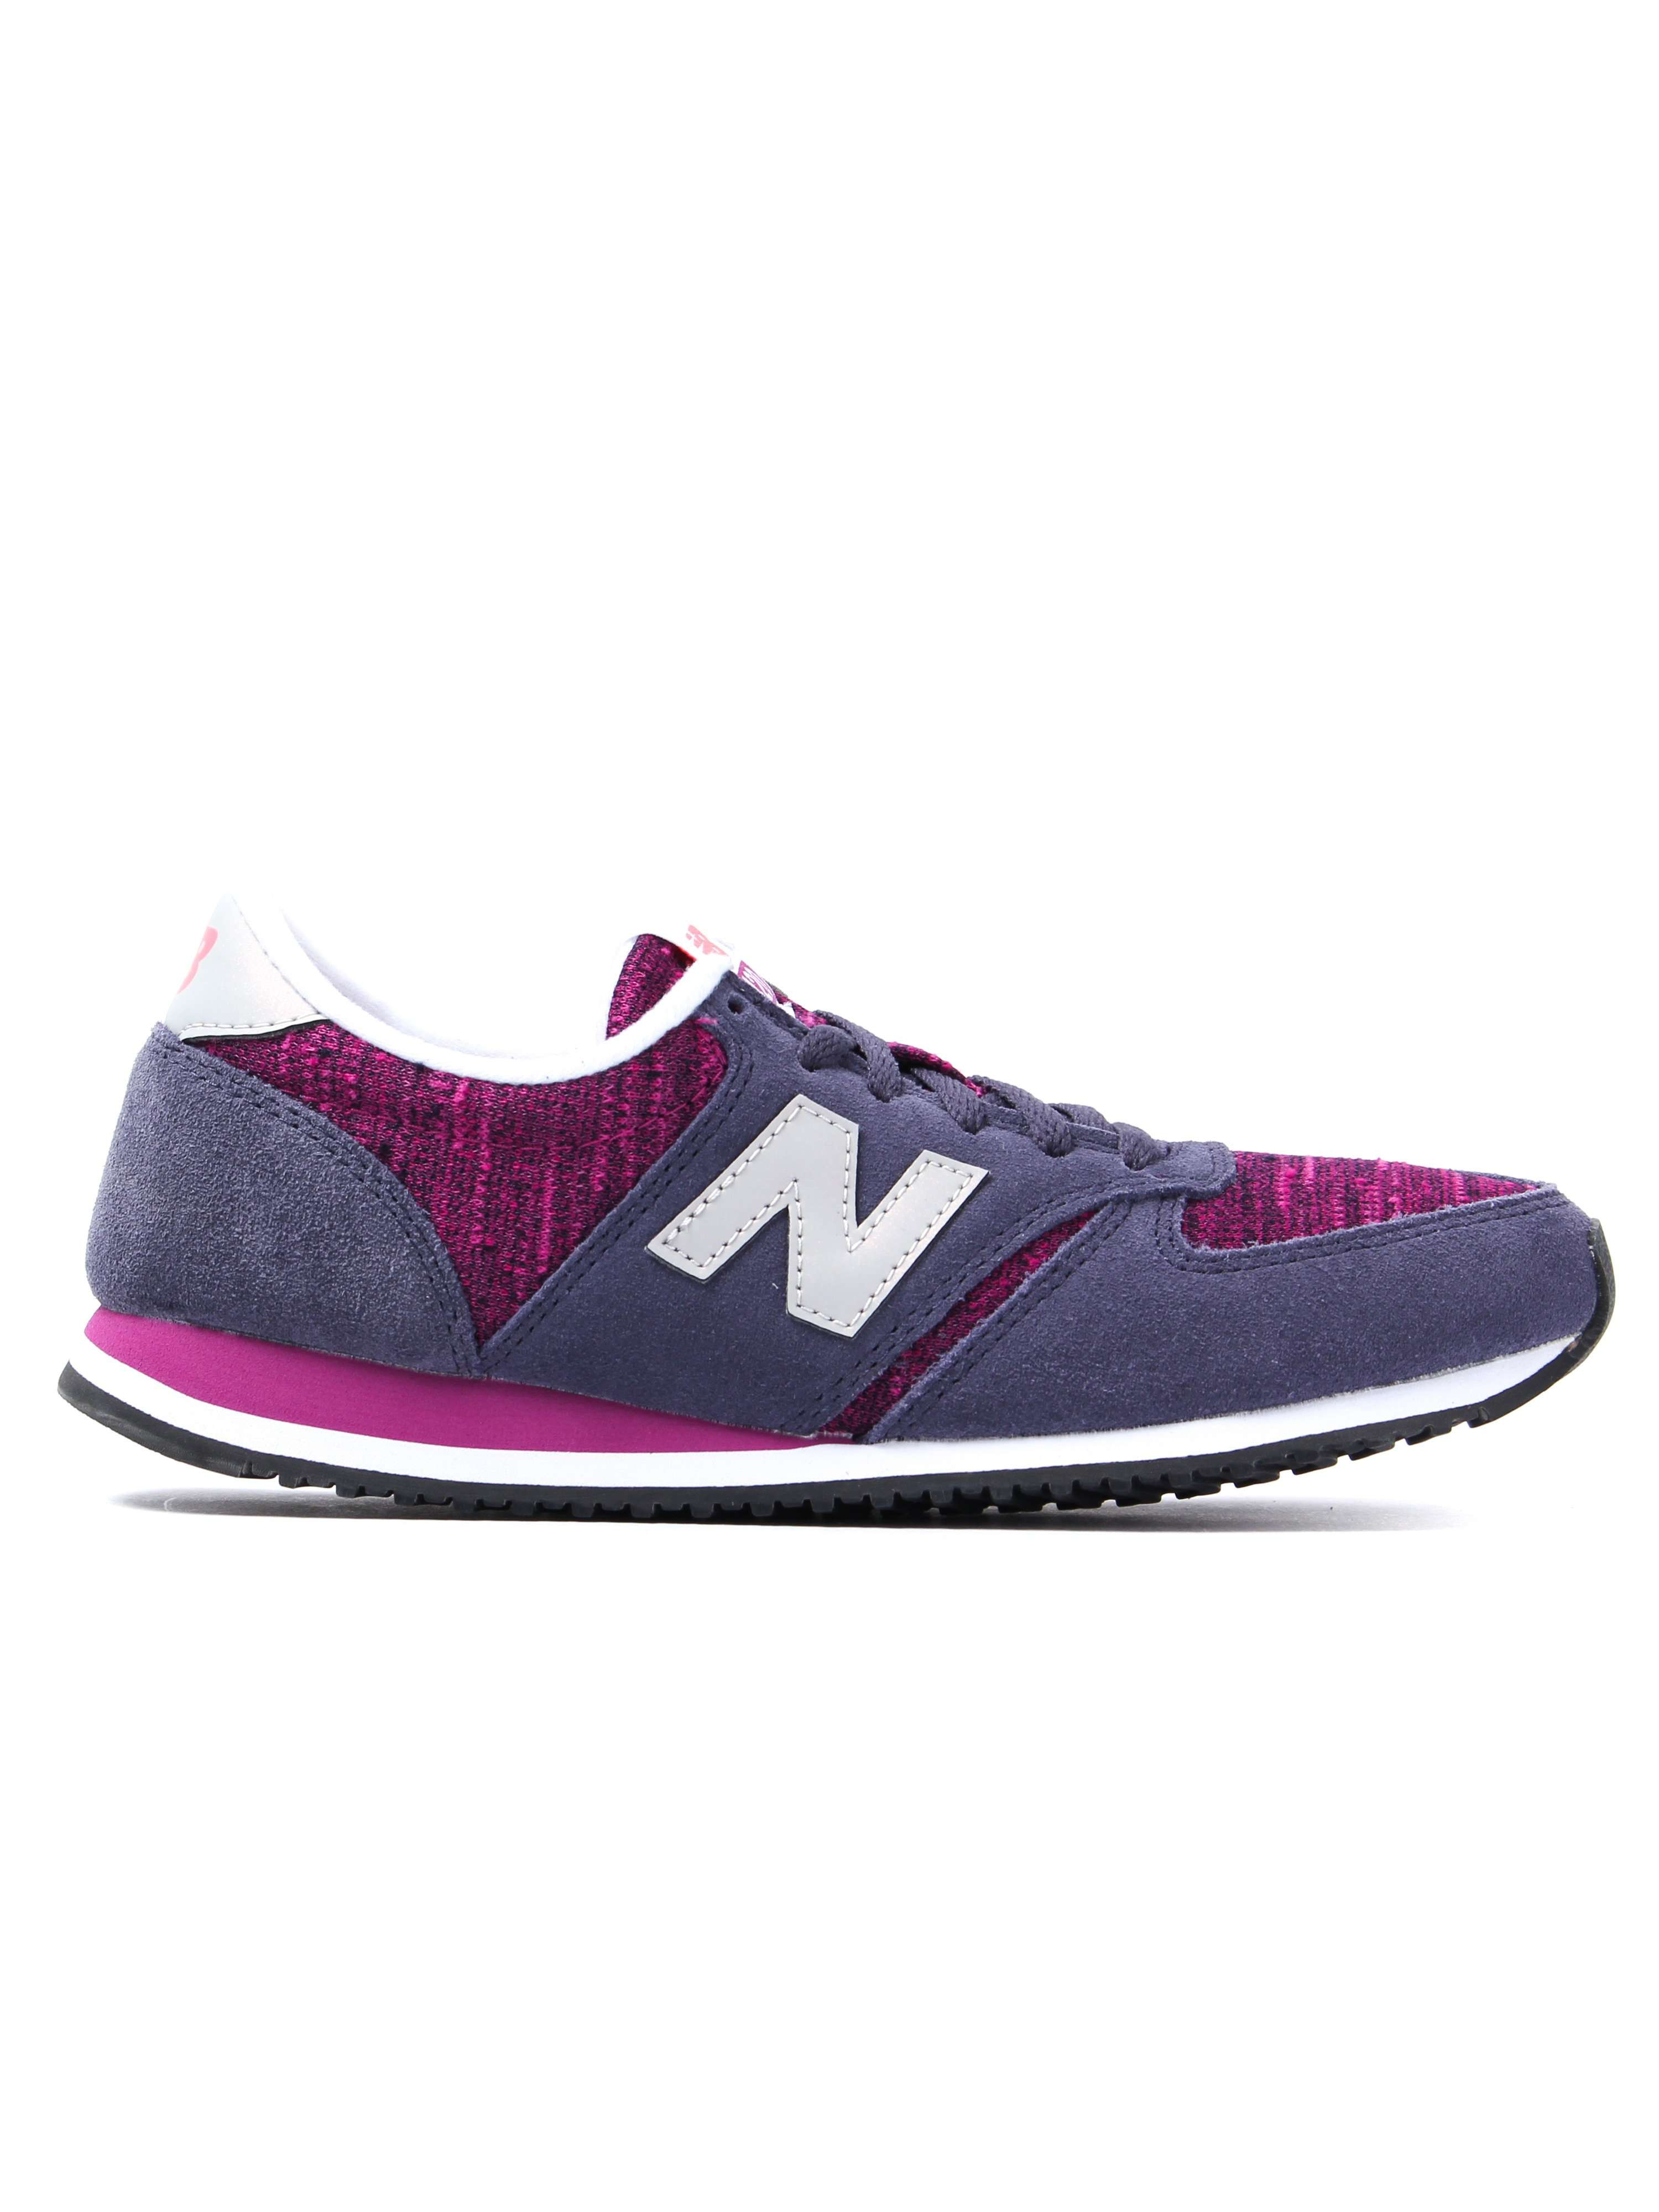 New Balance Women's 420 Low Top Trainers - Navy & Burgundy